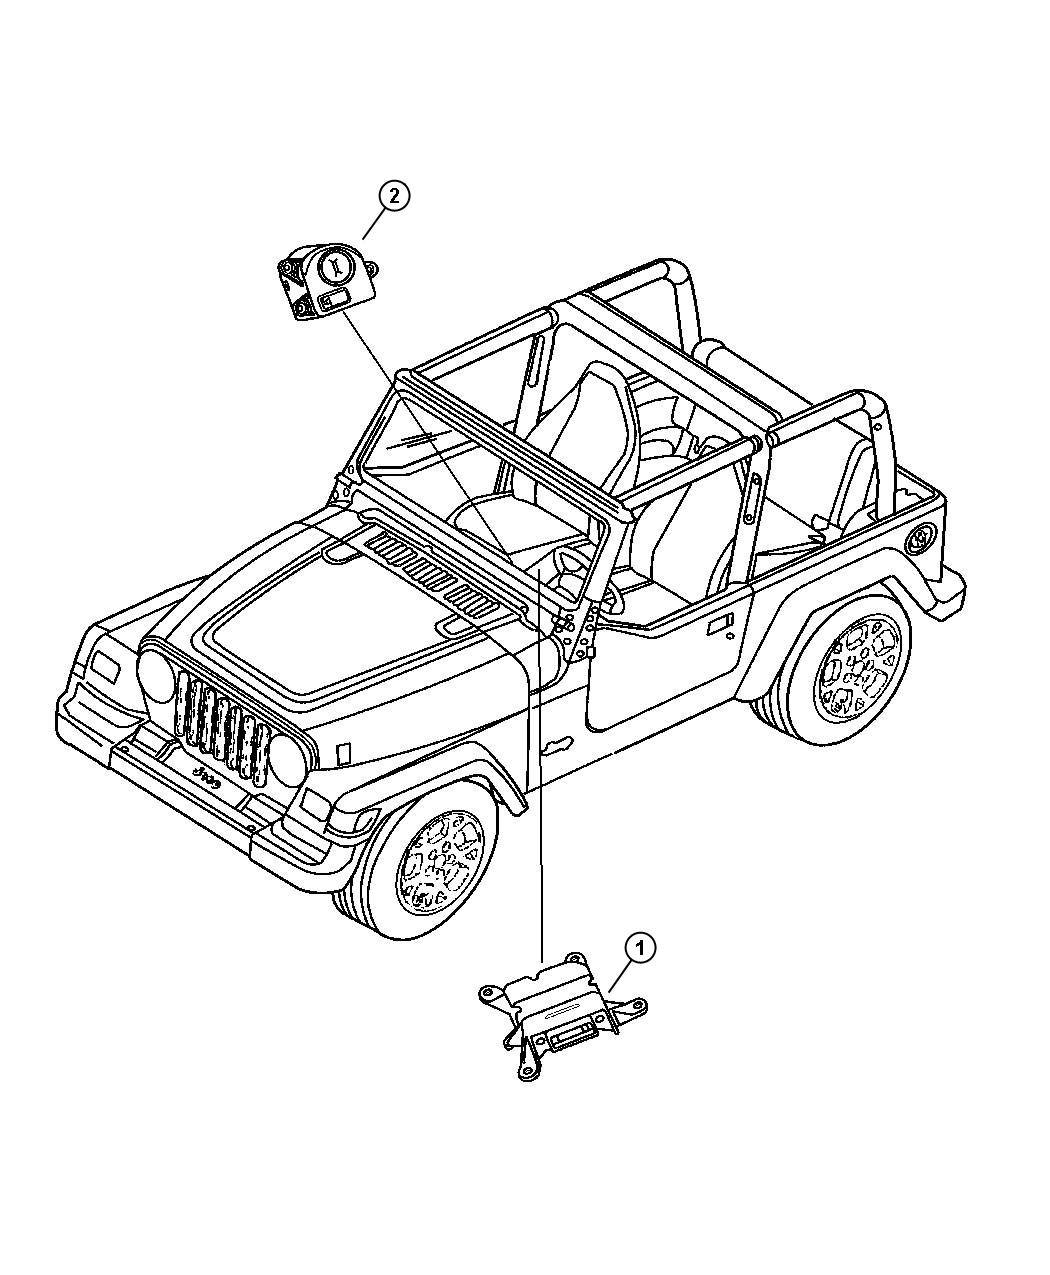 Jeep Commander Module. Air bag control. After 10/17/01